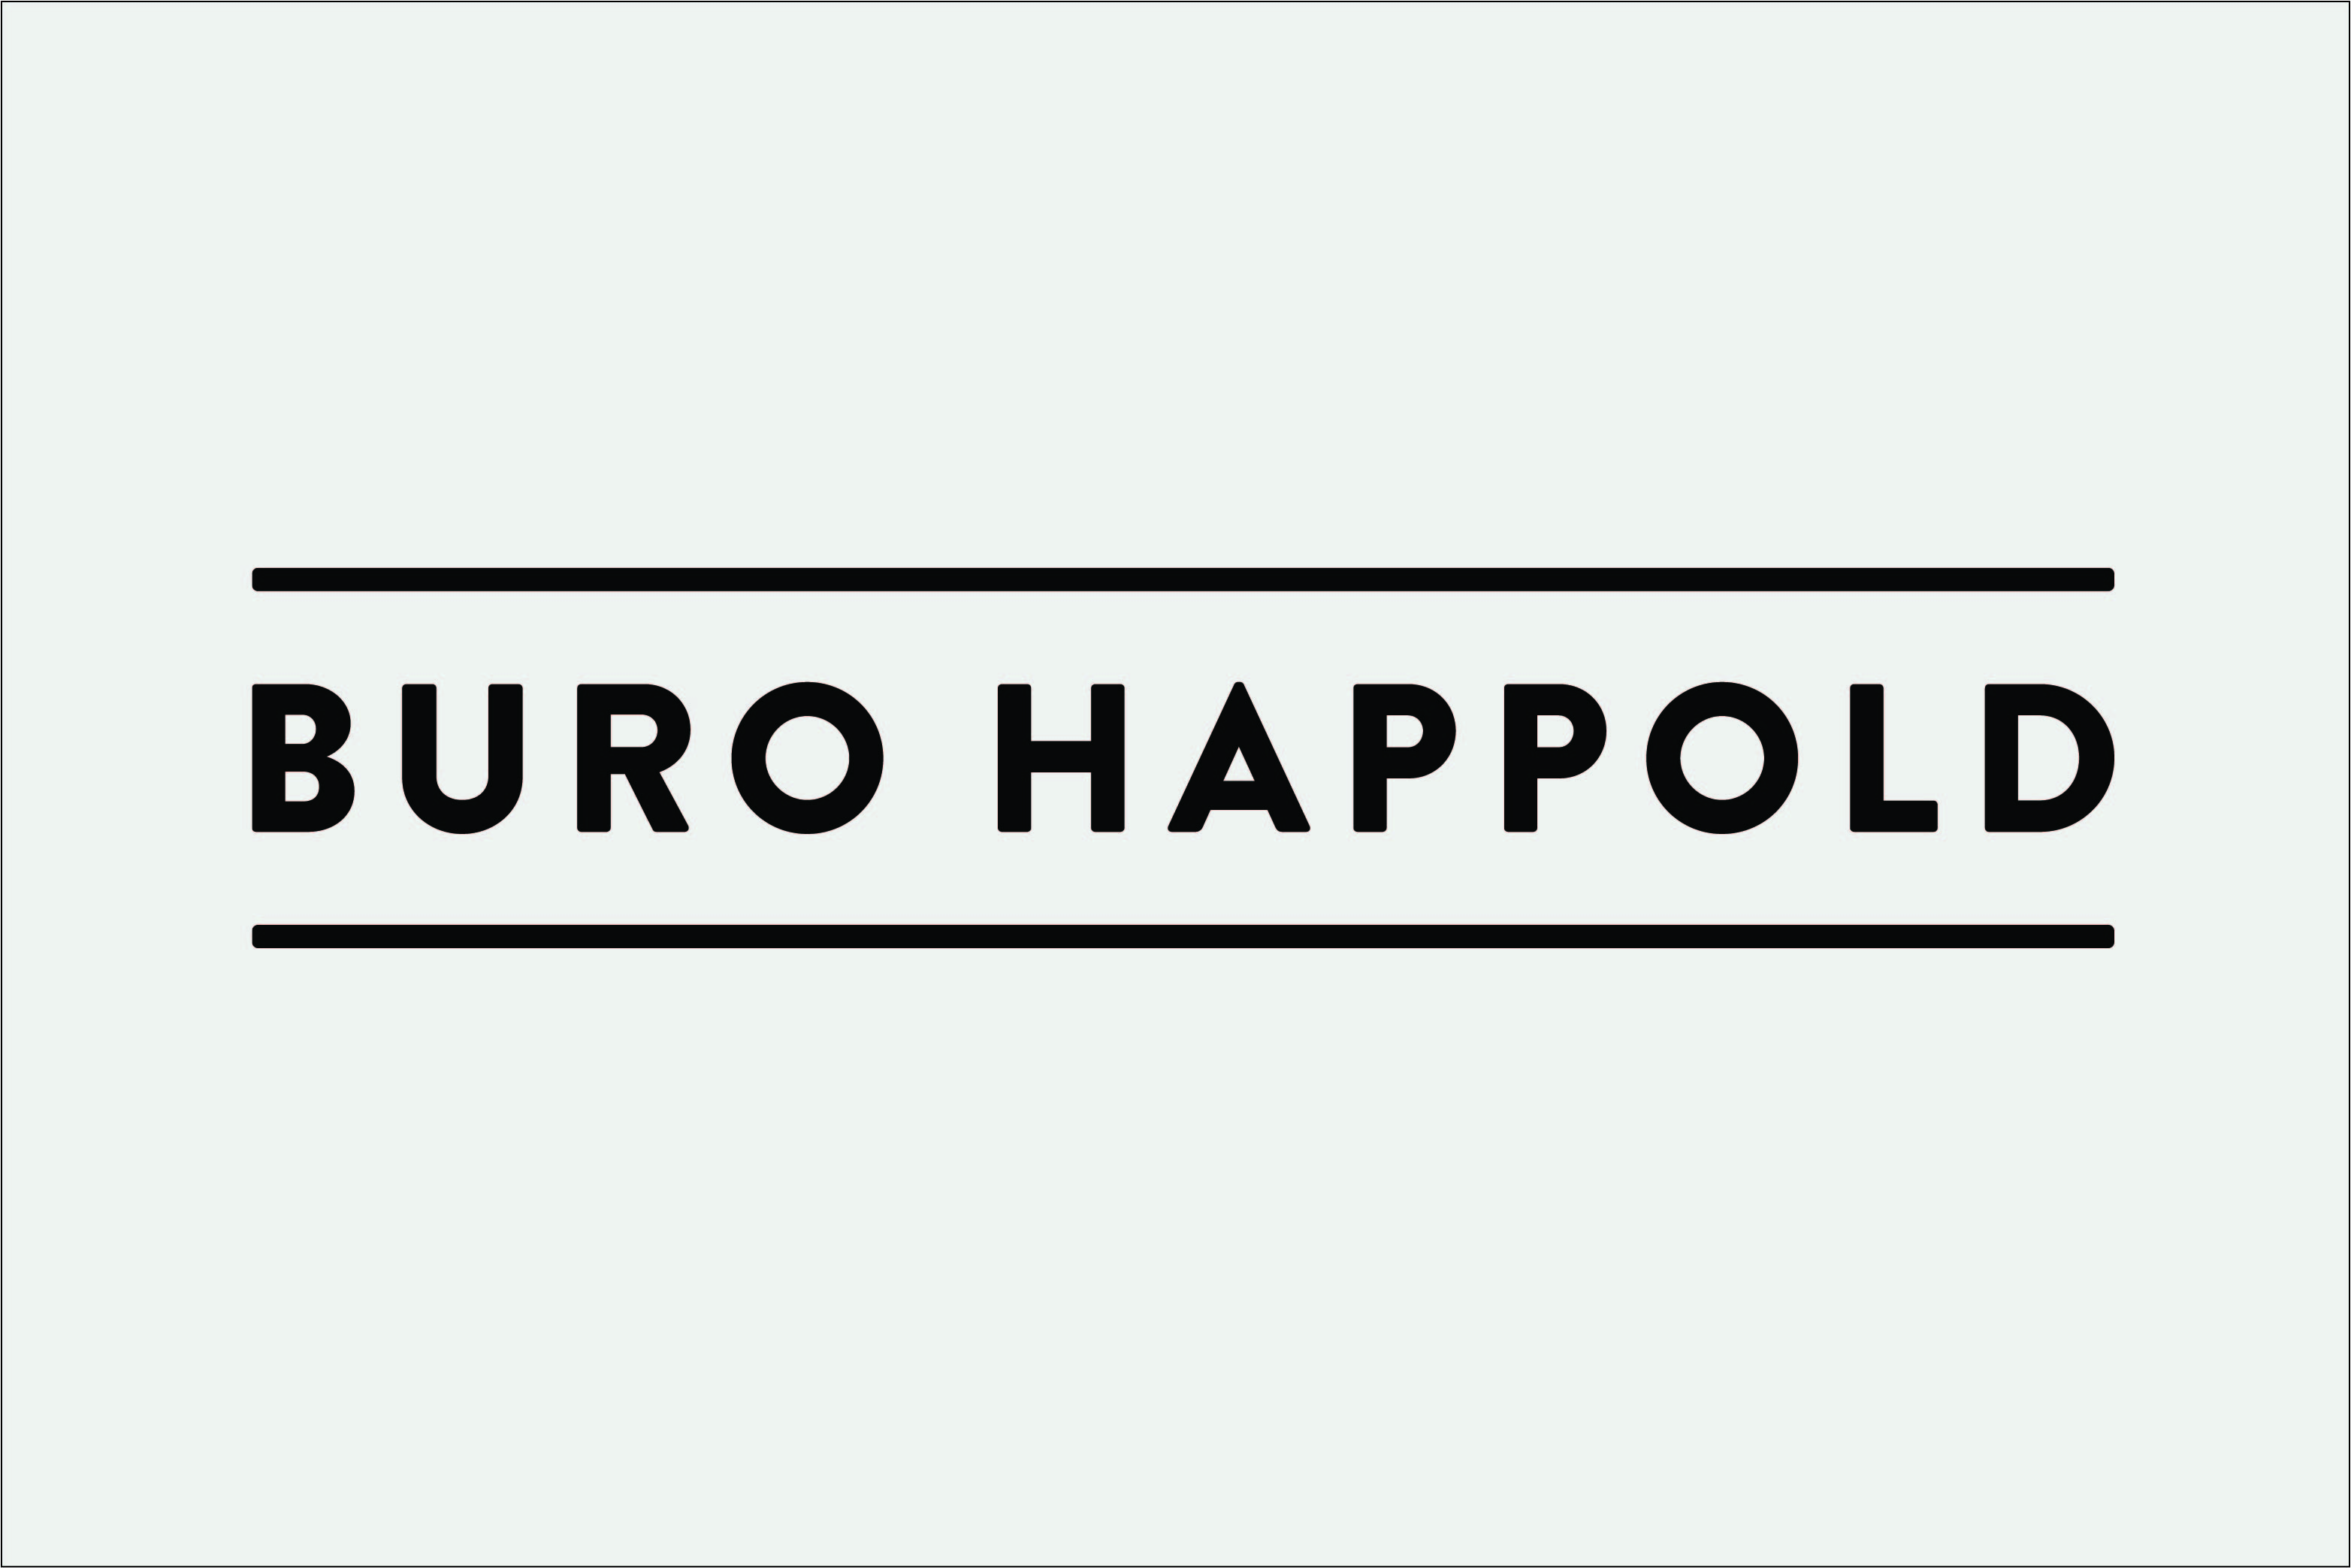 Buro Happold acknowledged as global leader in sustainable design